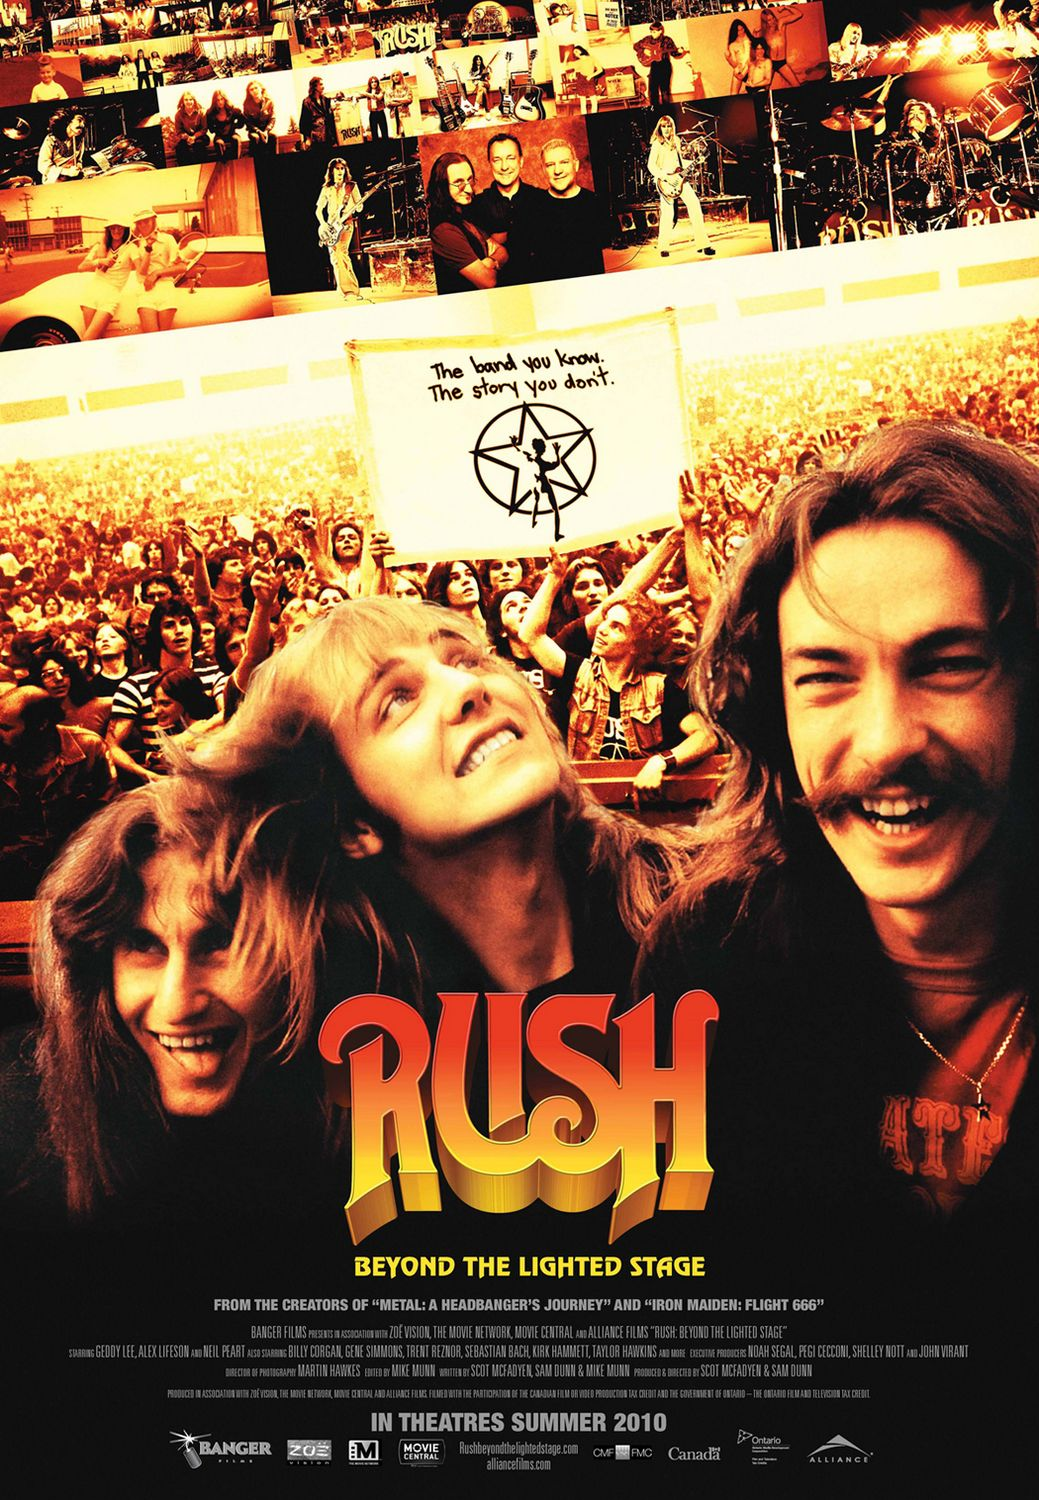 ¿Documentales de/sobre rock? - Página 3 Rush-beyond-the-lighted-stage